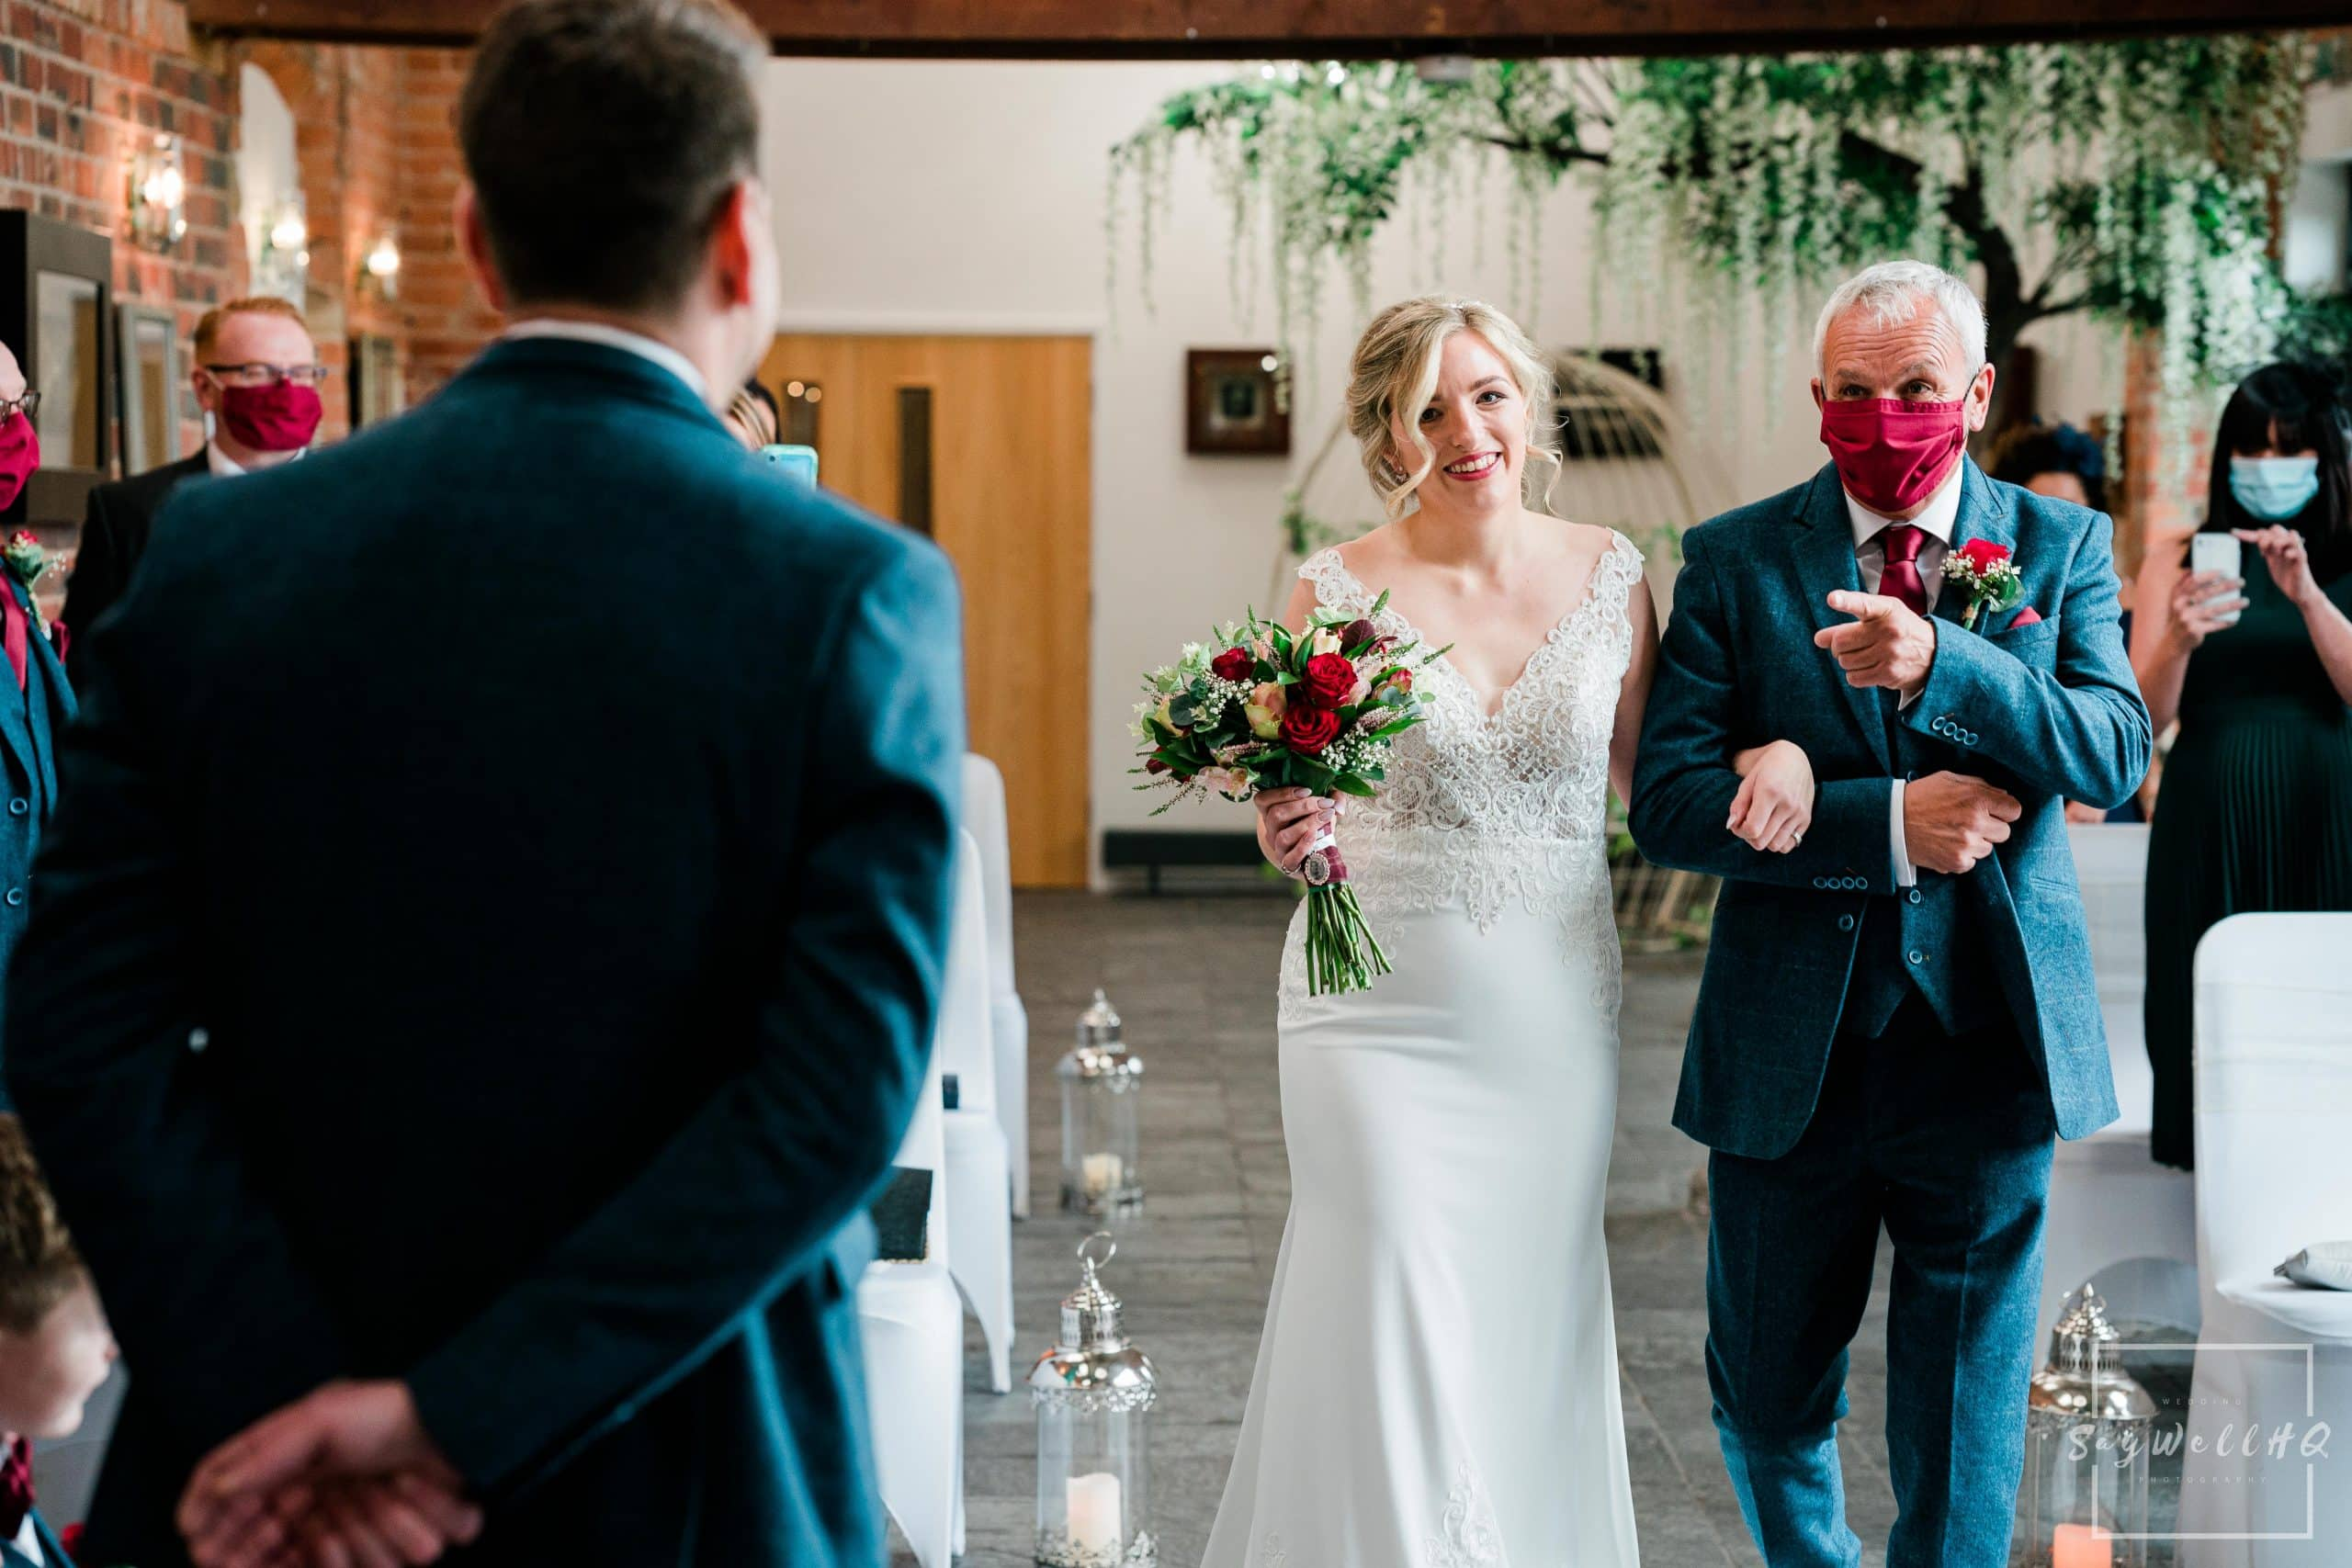 Bride and father of the bride walk down the aisle at macro covid wedding at Goosedale - Wedding Photography by goosedale wedding photographer Andy Saywell of SaywellHQ